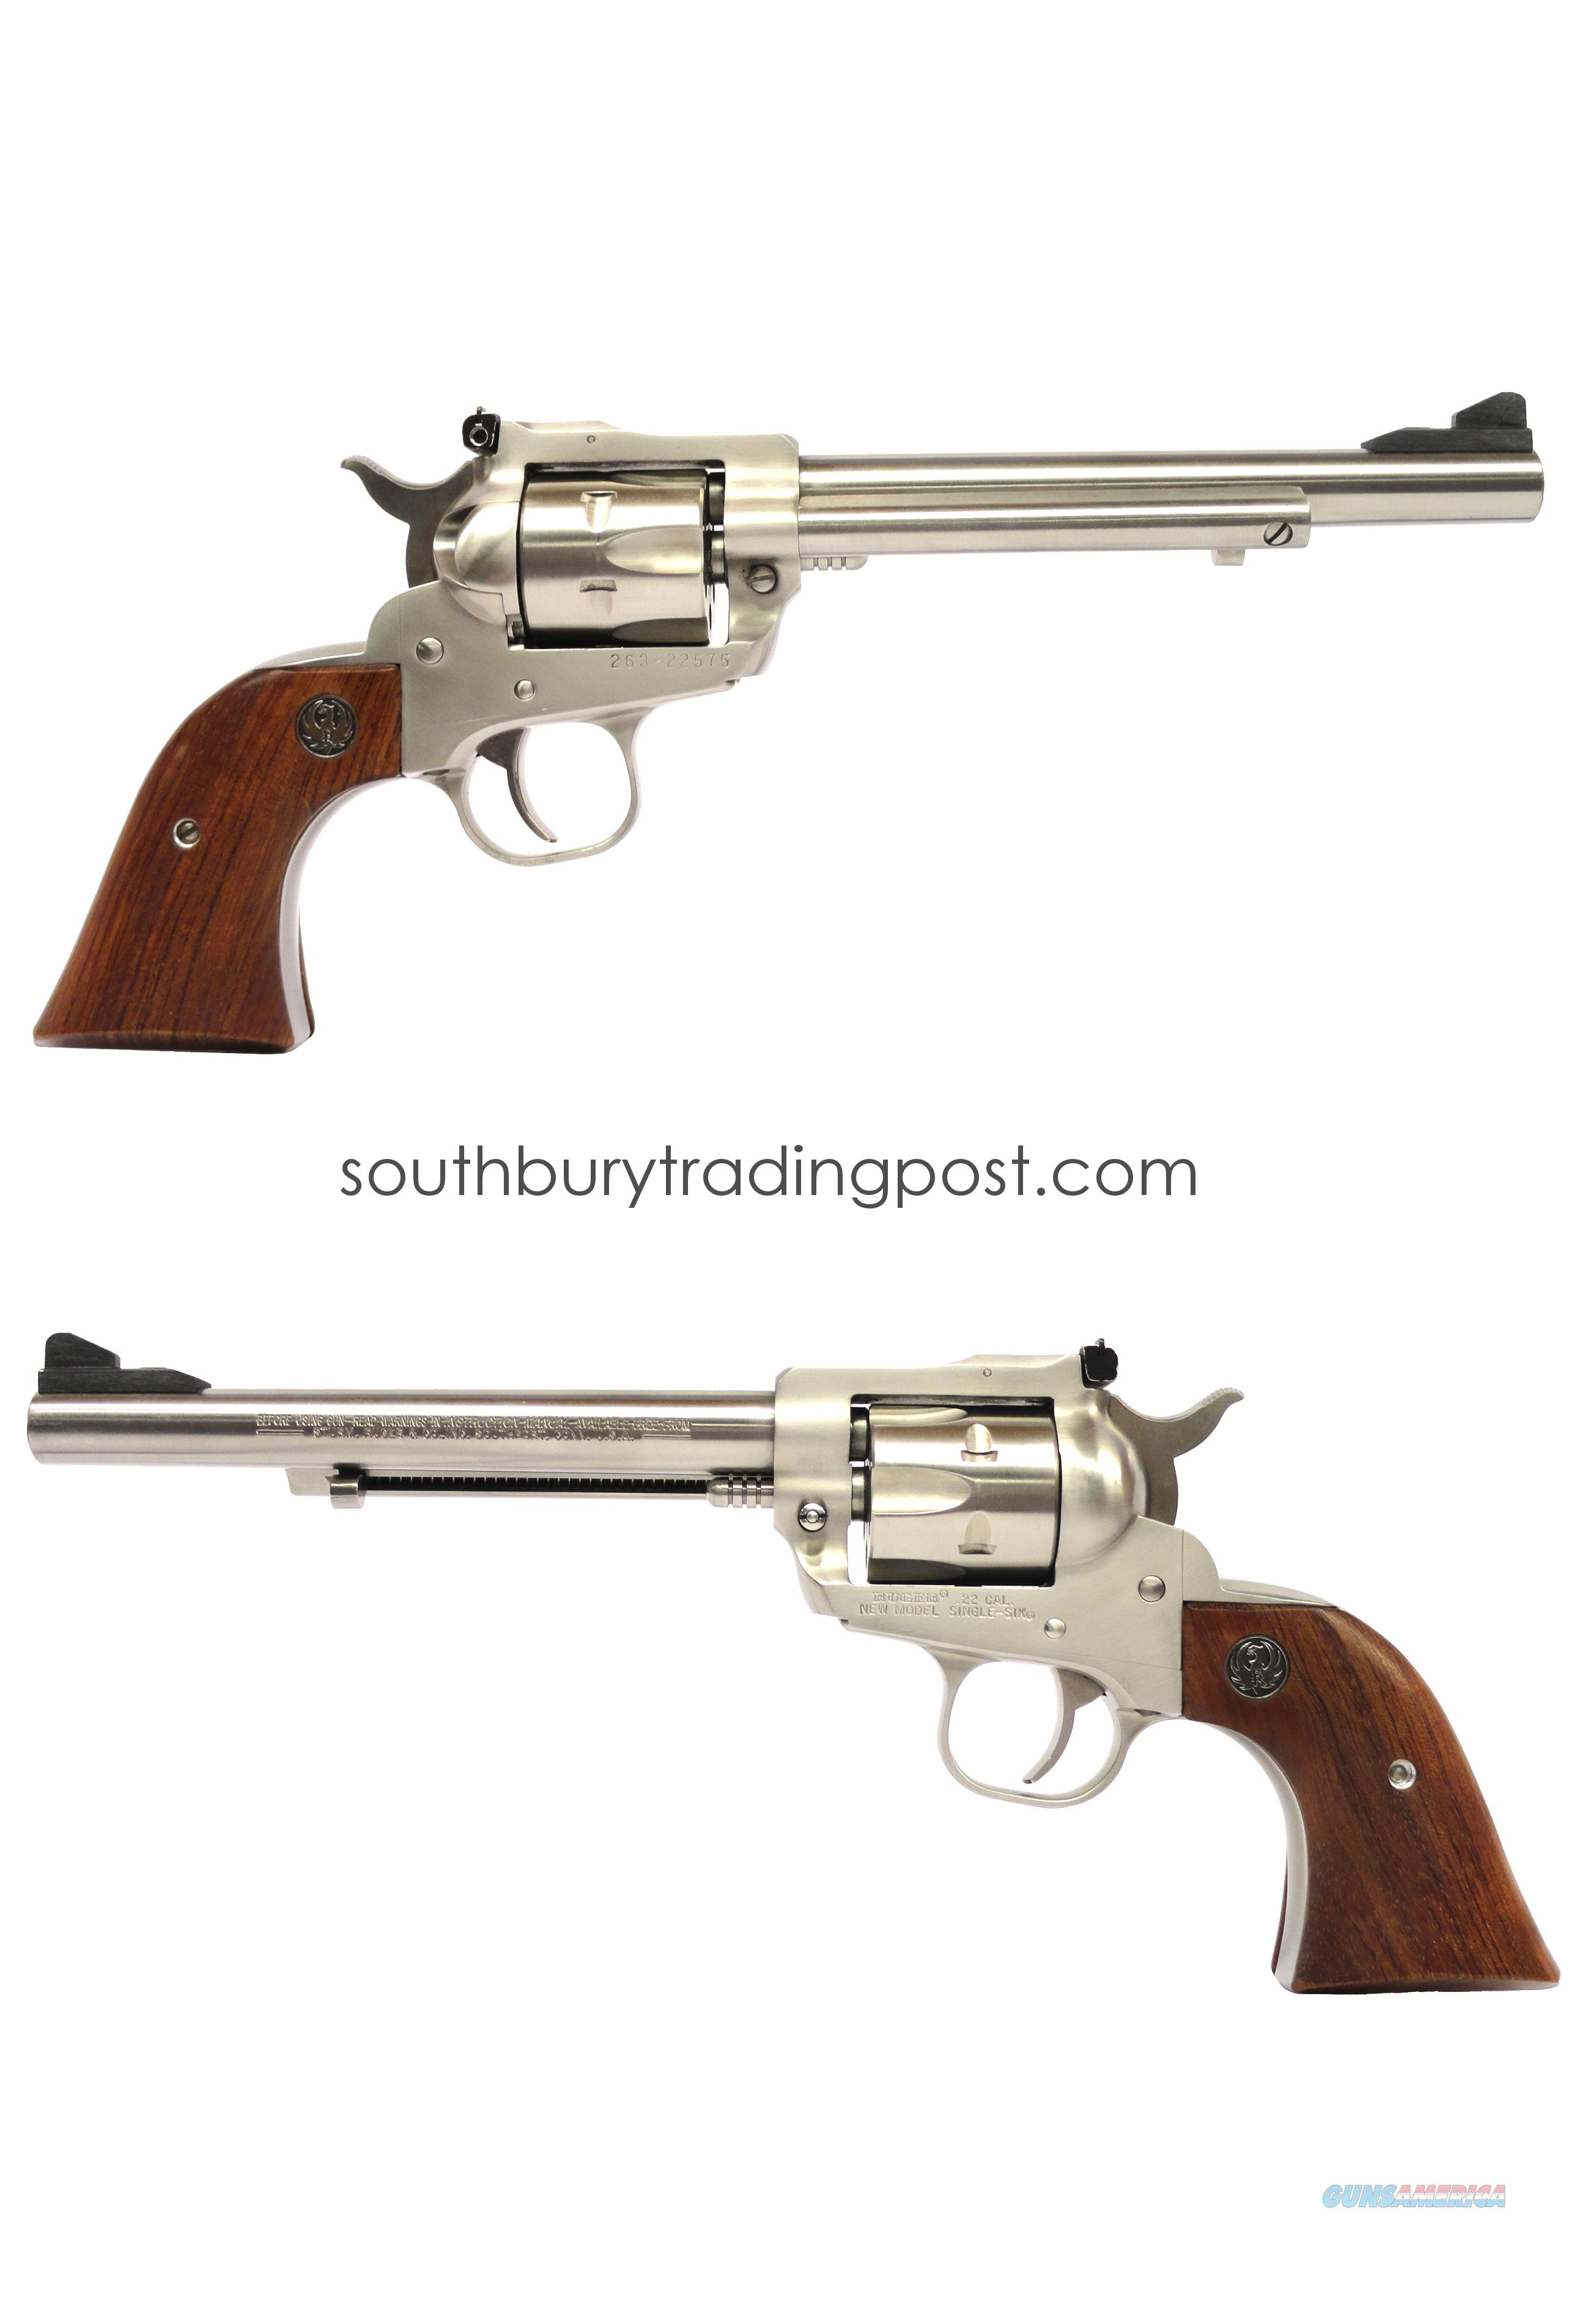 Ruger New Model Single-Six .22LR/WMR - Circa 1997  Guns > Pistols > Ruger Single Action Revolvers > Single Six Type